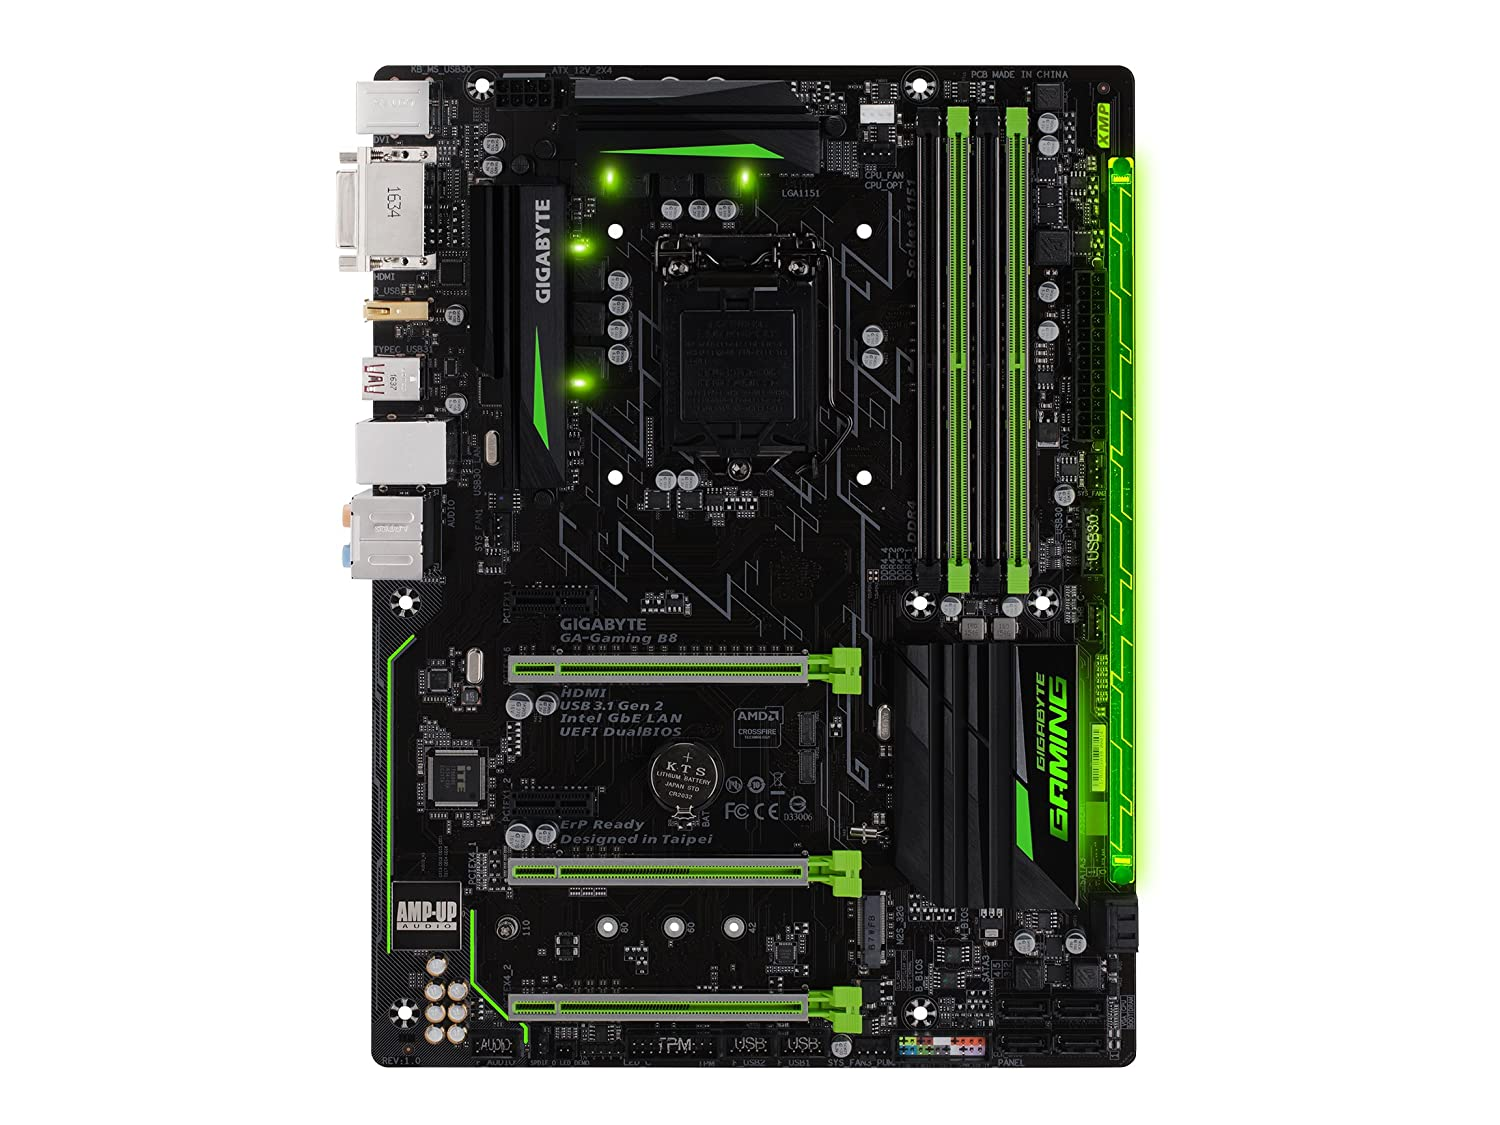 81S wDWje4L._SL1500_ amazon com gigabyte ga gaming b8 lga1151 intel atx 2 way  at bakdesigns.co